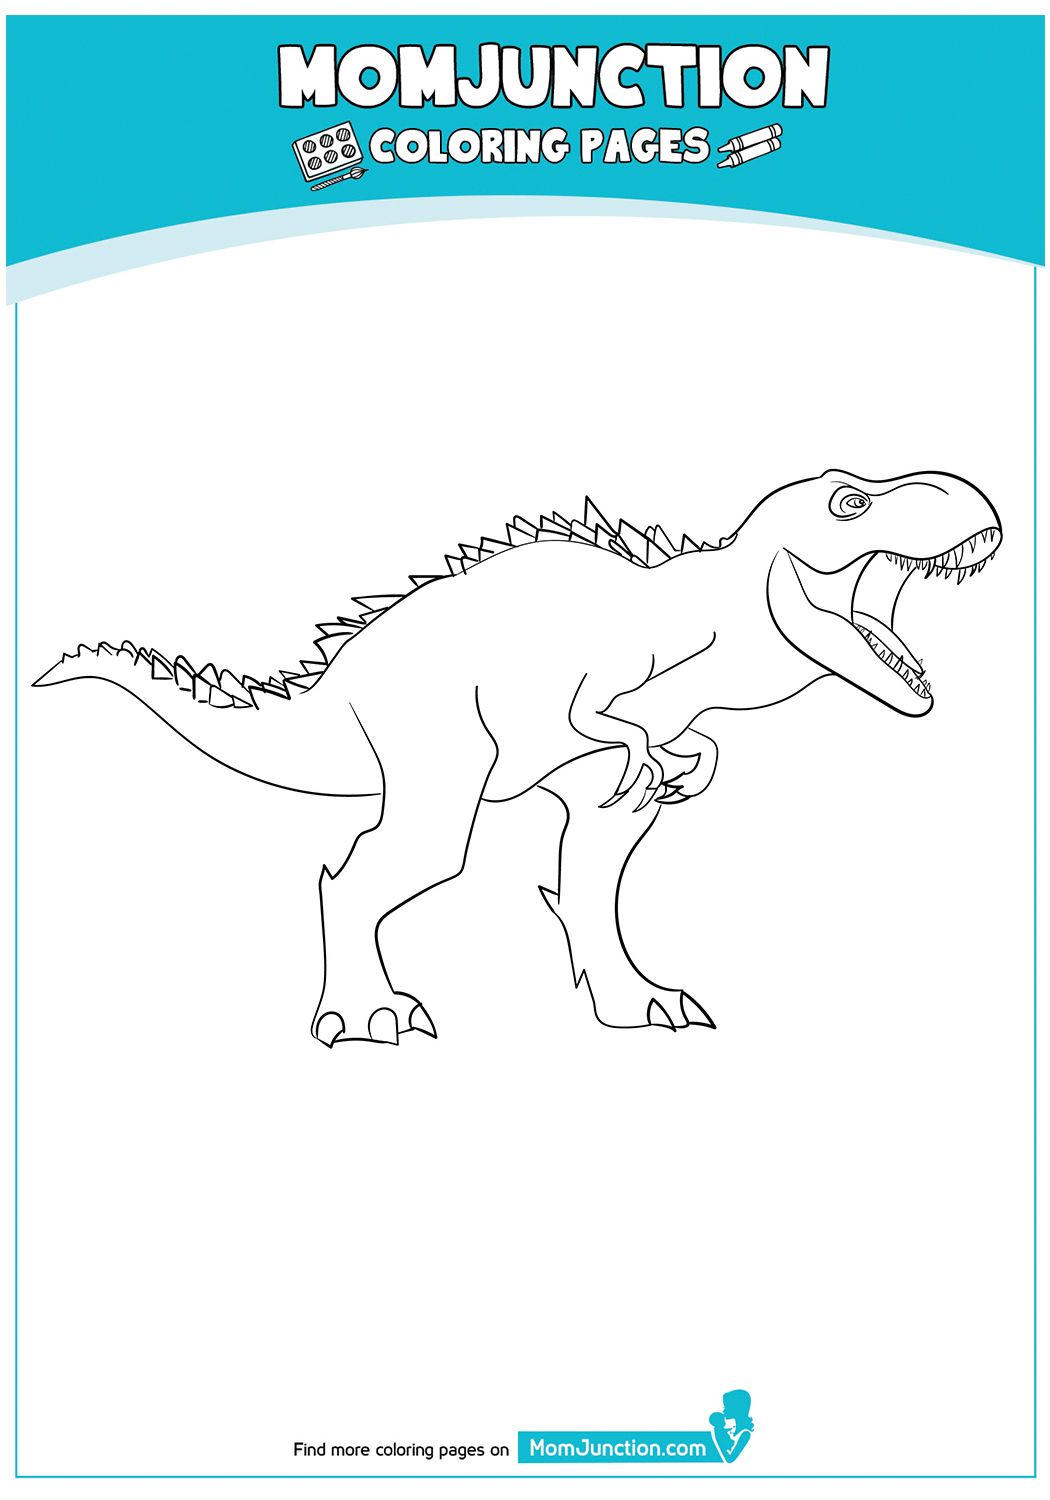 The Dinosaur With Pentagons Coloring Page in 2020